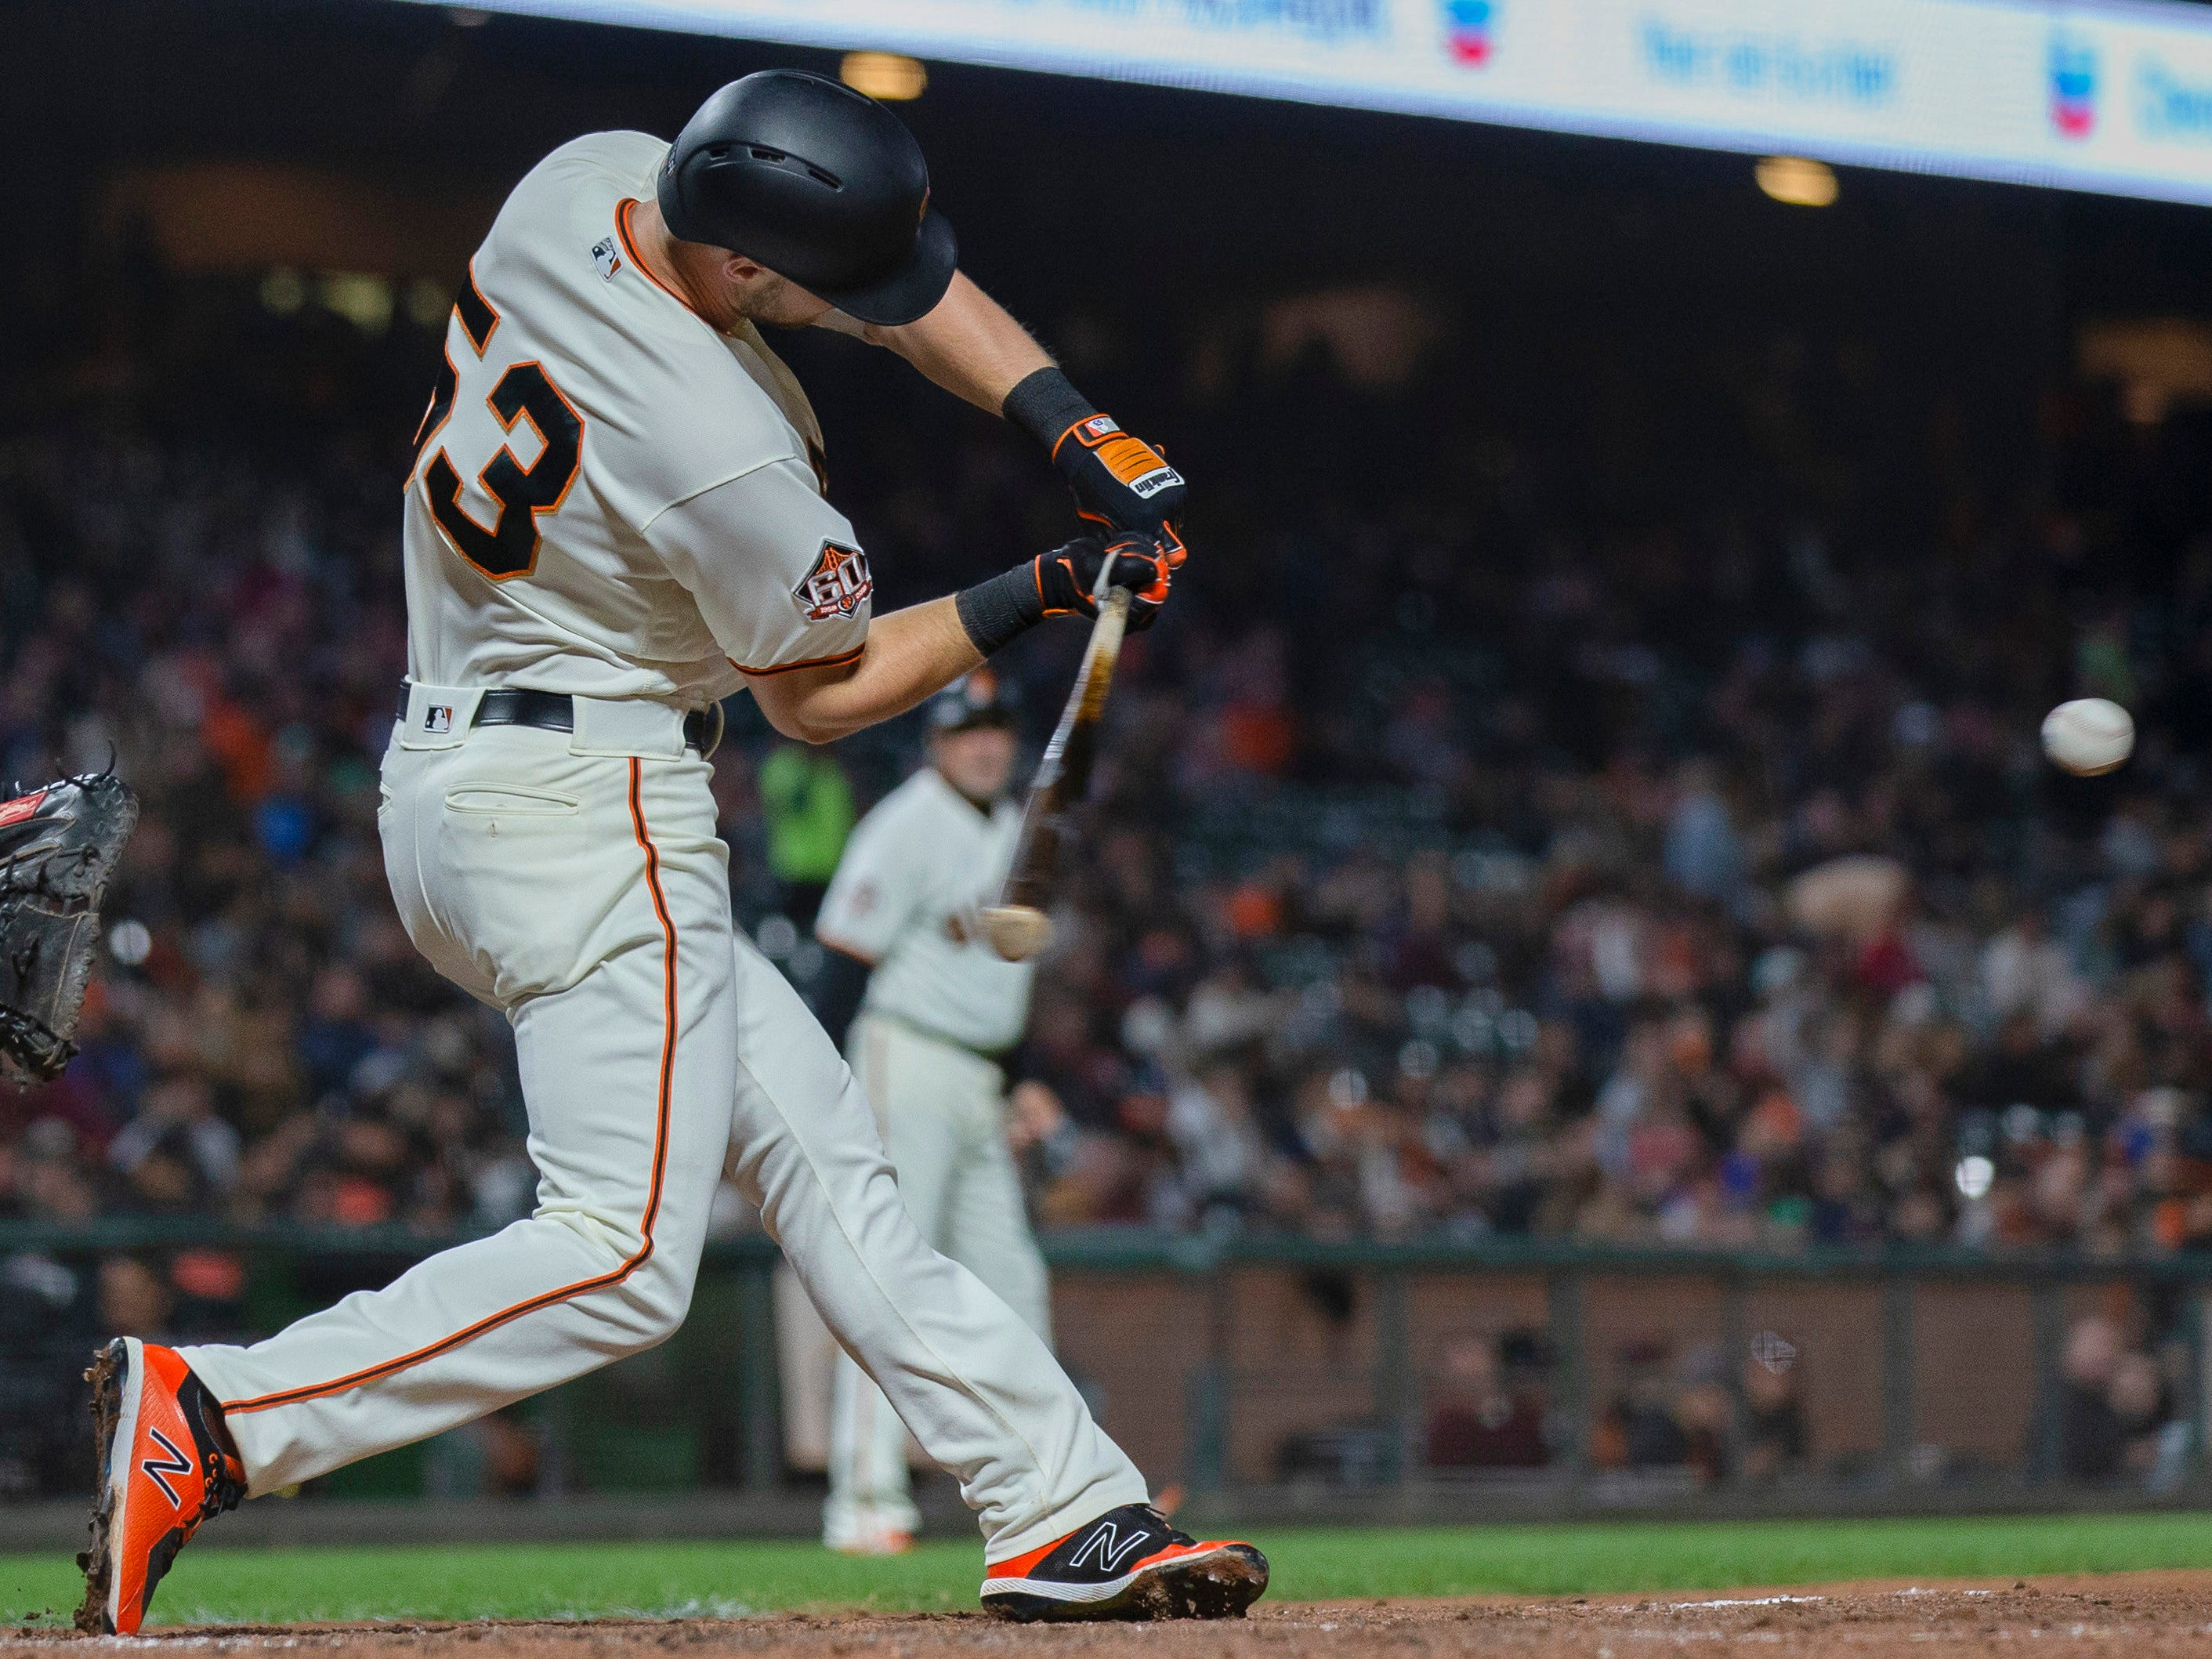 Aug 27, 2018; San Francisco, CA, USA; San Francisco Giants first baseman Austin Slater (53) hits a single during the first inning against the Arizona Diamondbacks at AT&T Park. Mandatory Credit: Neville E. Guard-USA TODAY Sports